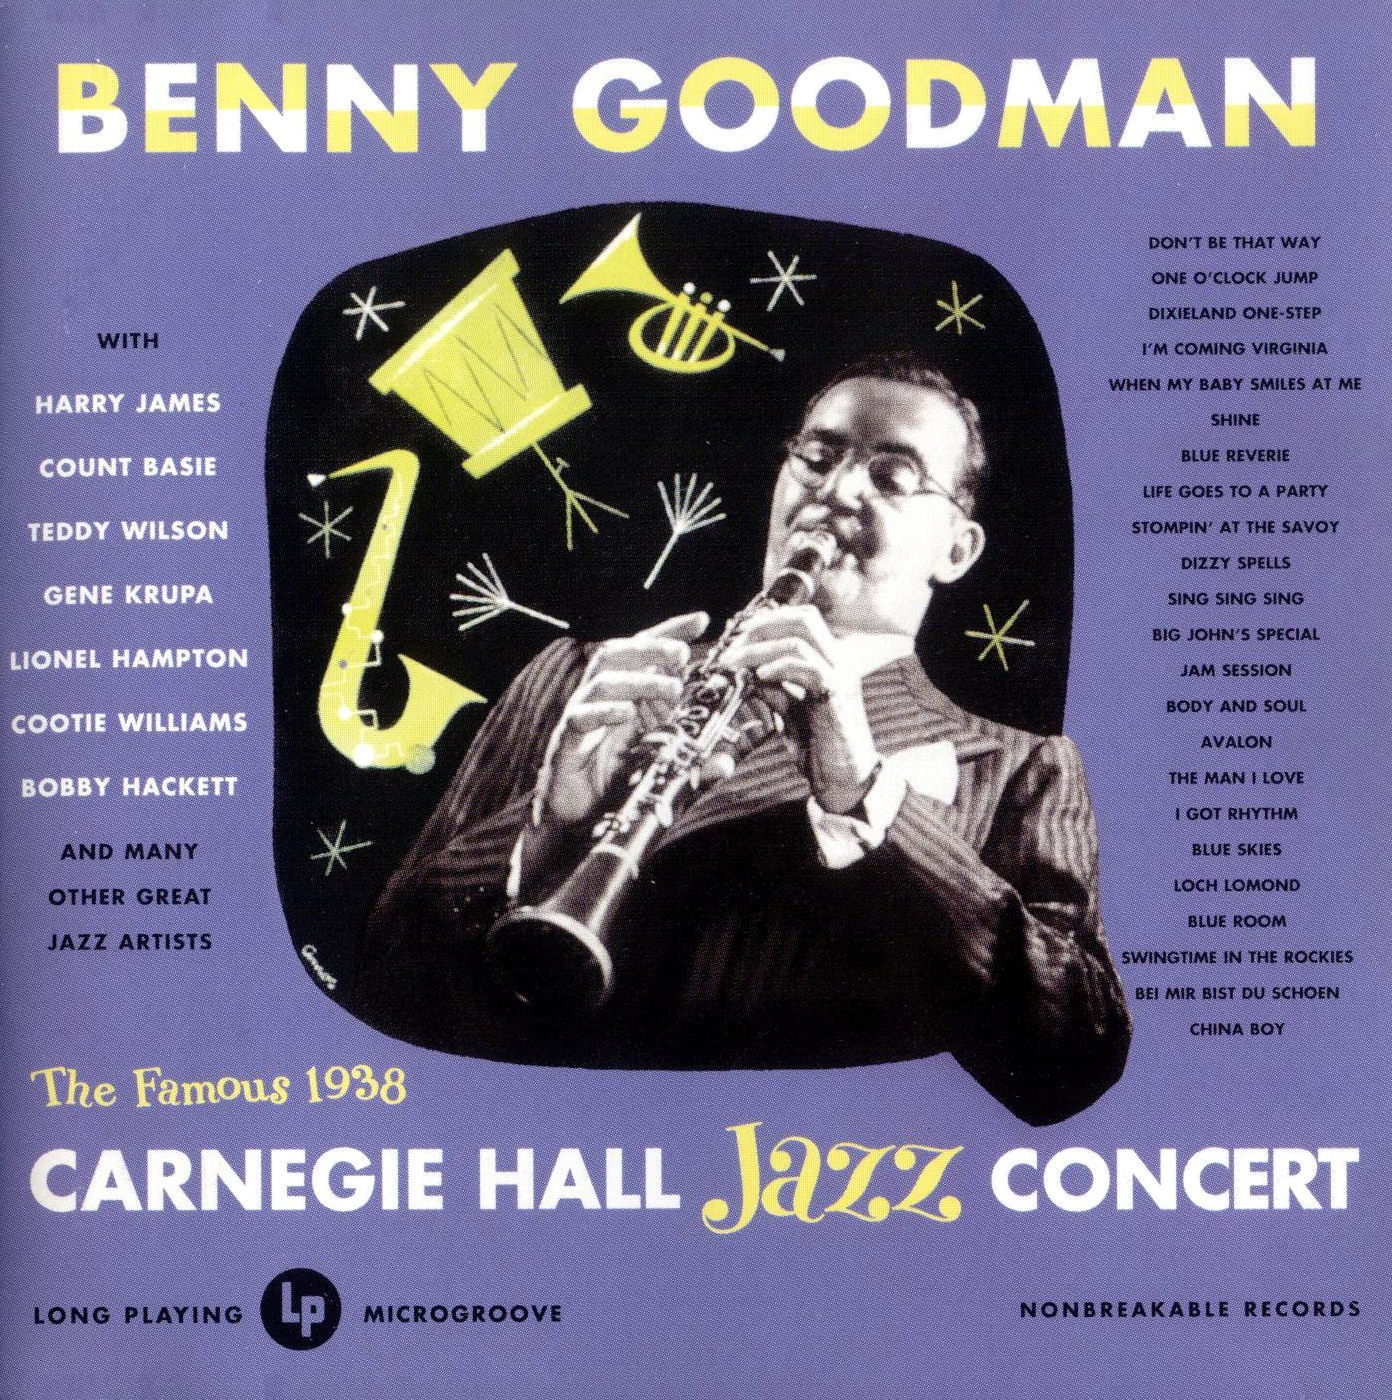 Benny Goodman - At Carnegie Hall 1938 Front 1950